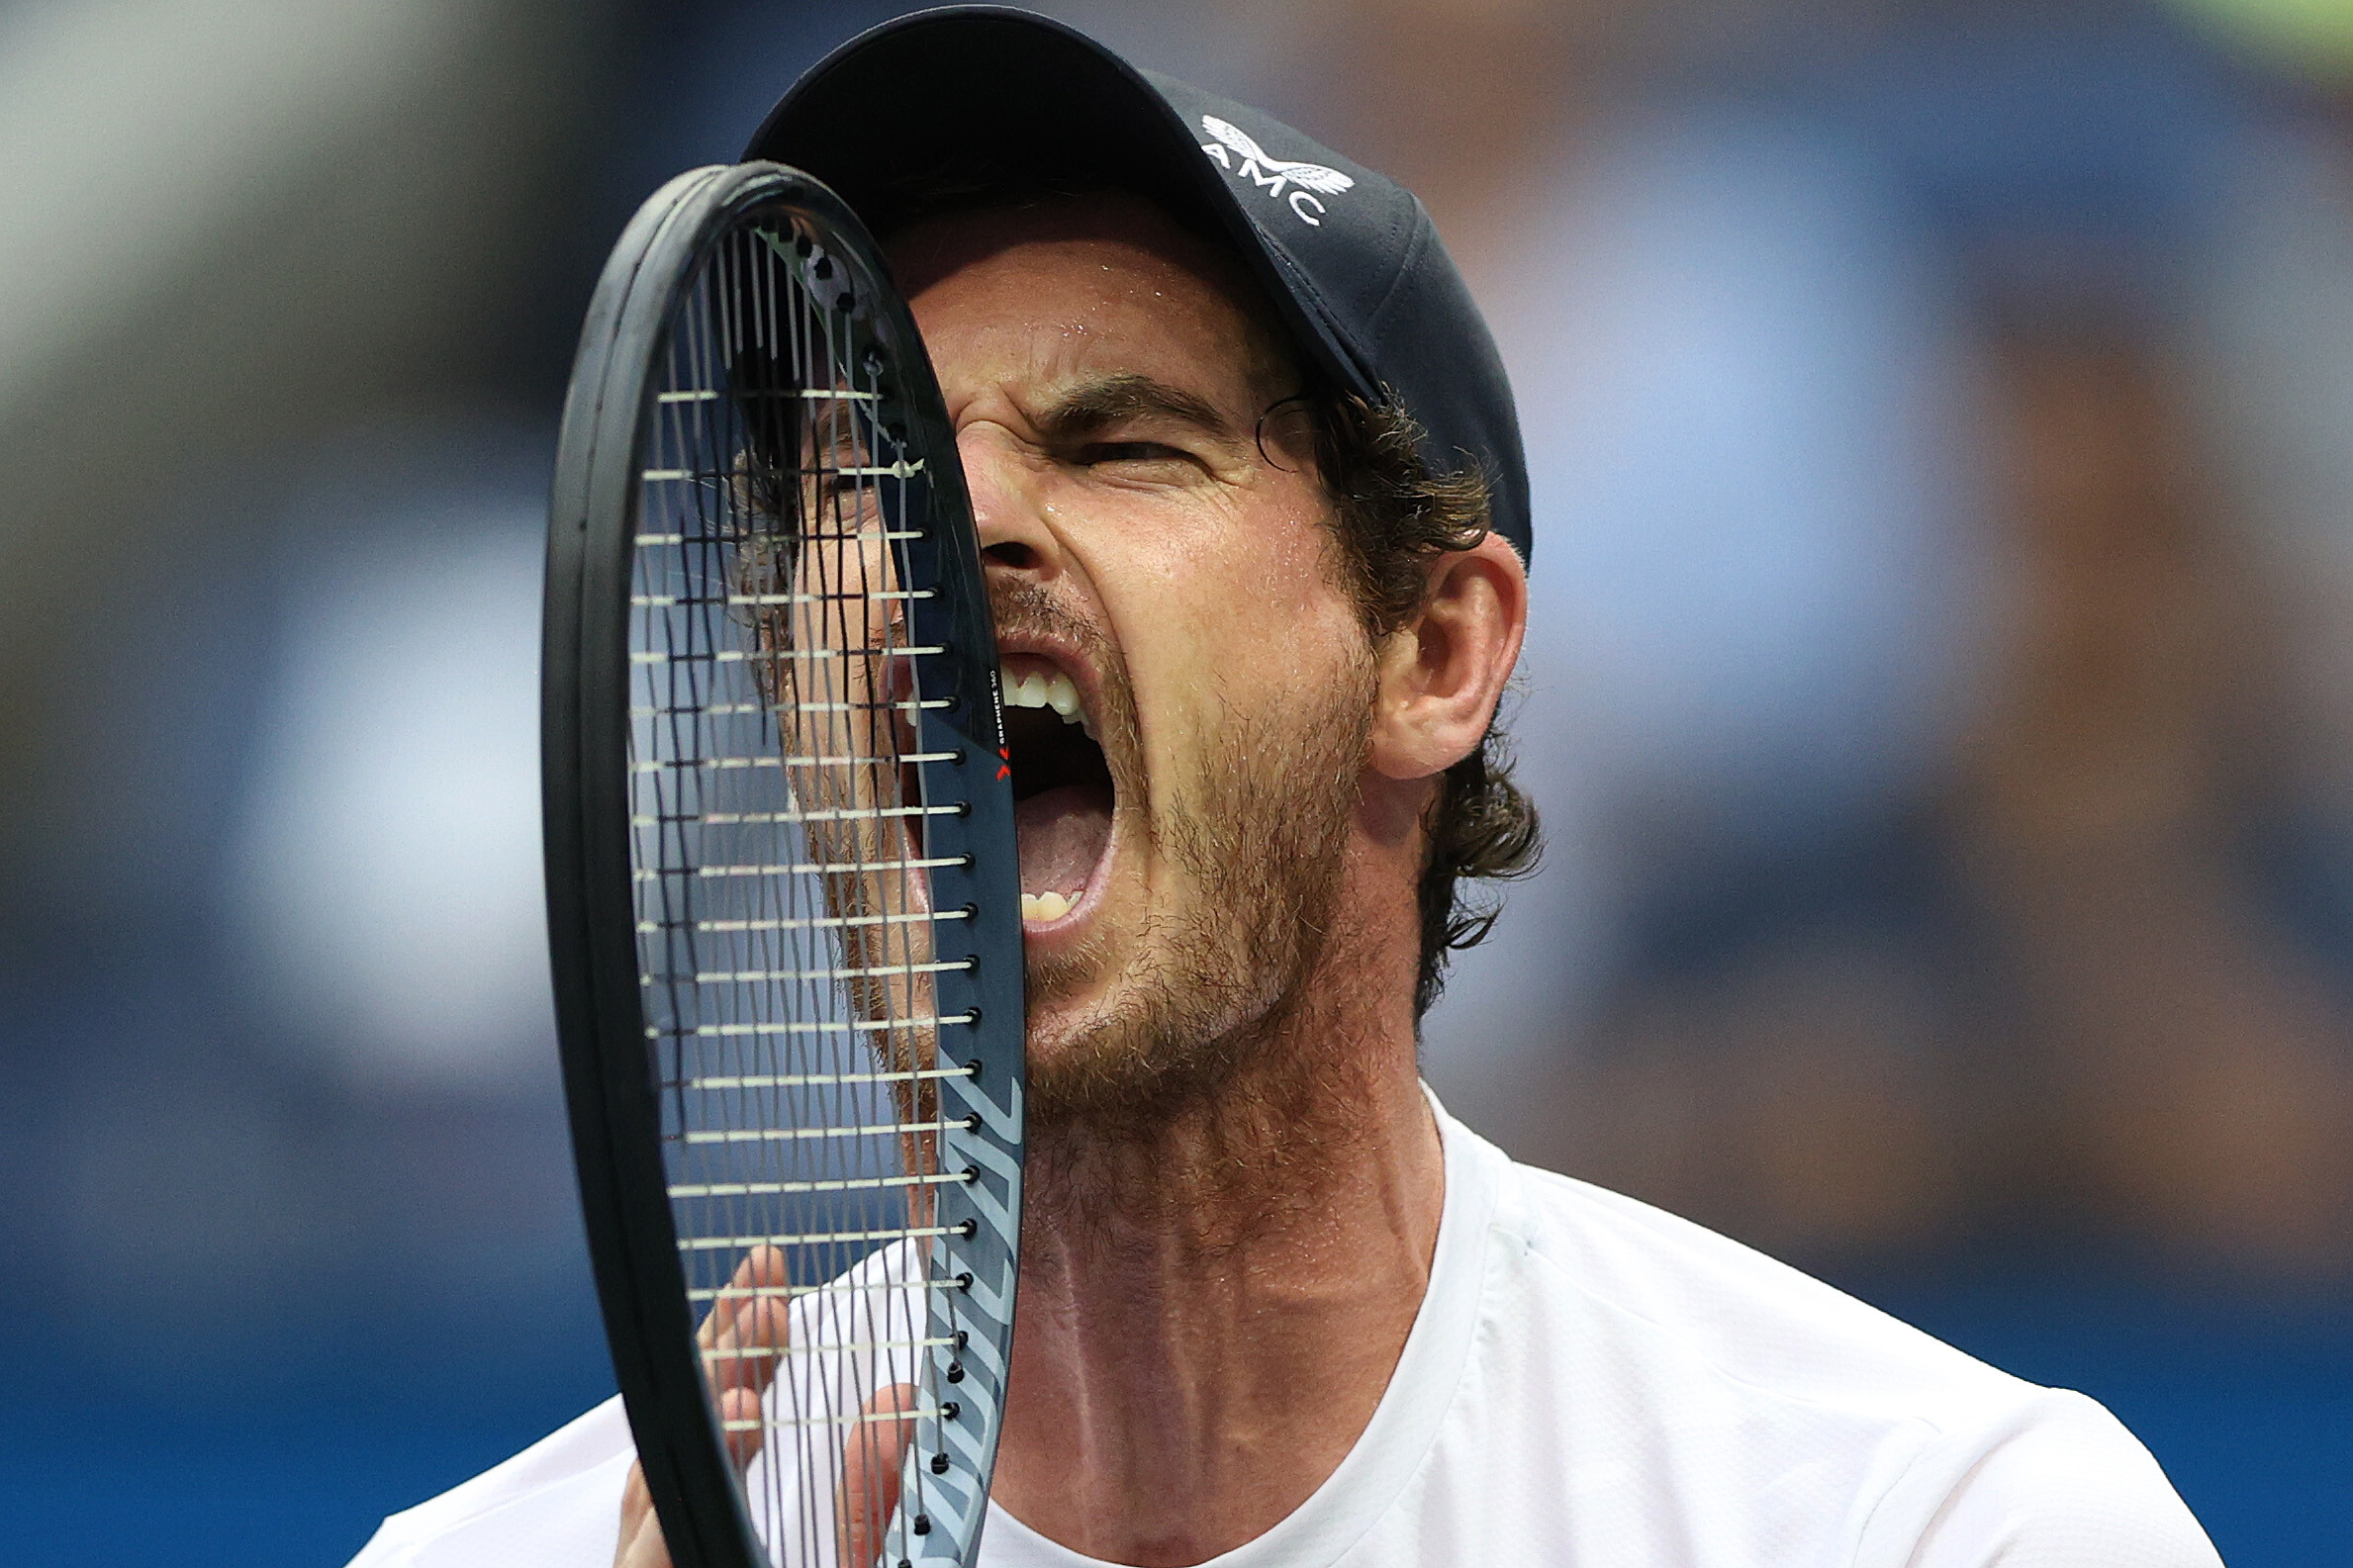 Andy Murray has aked fans to help him find his wedding ring.